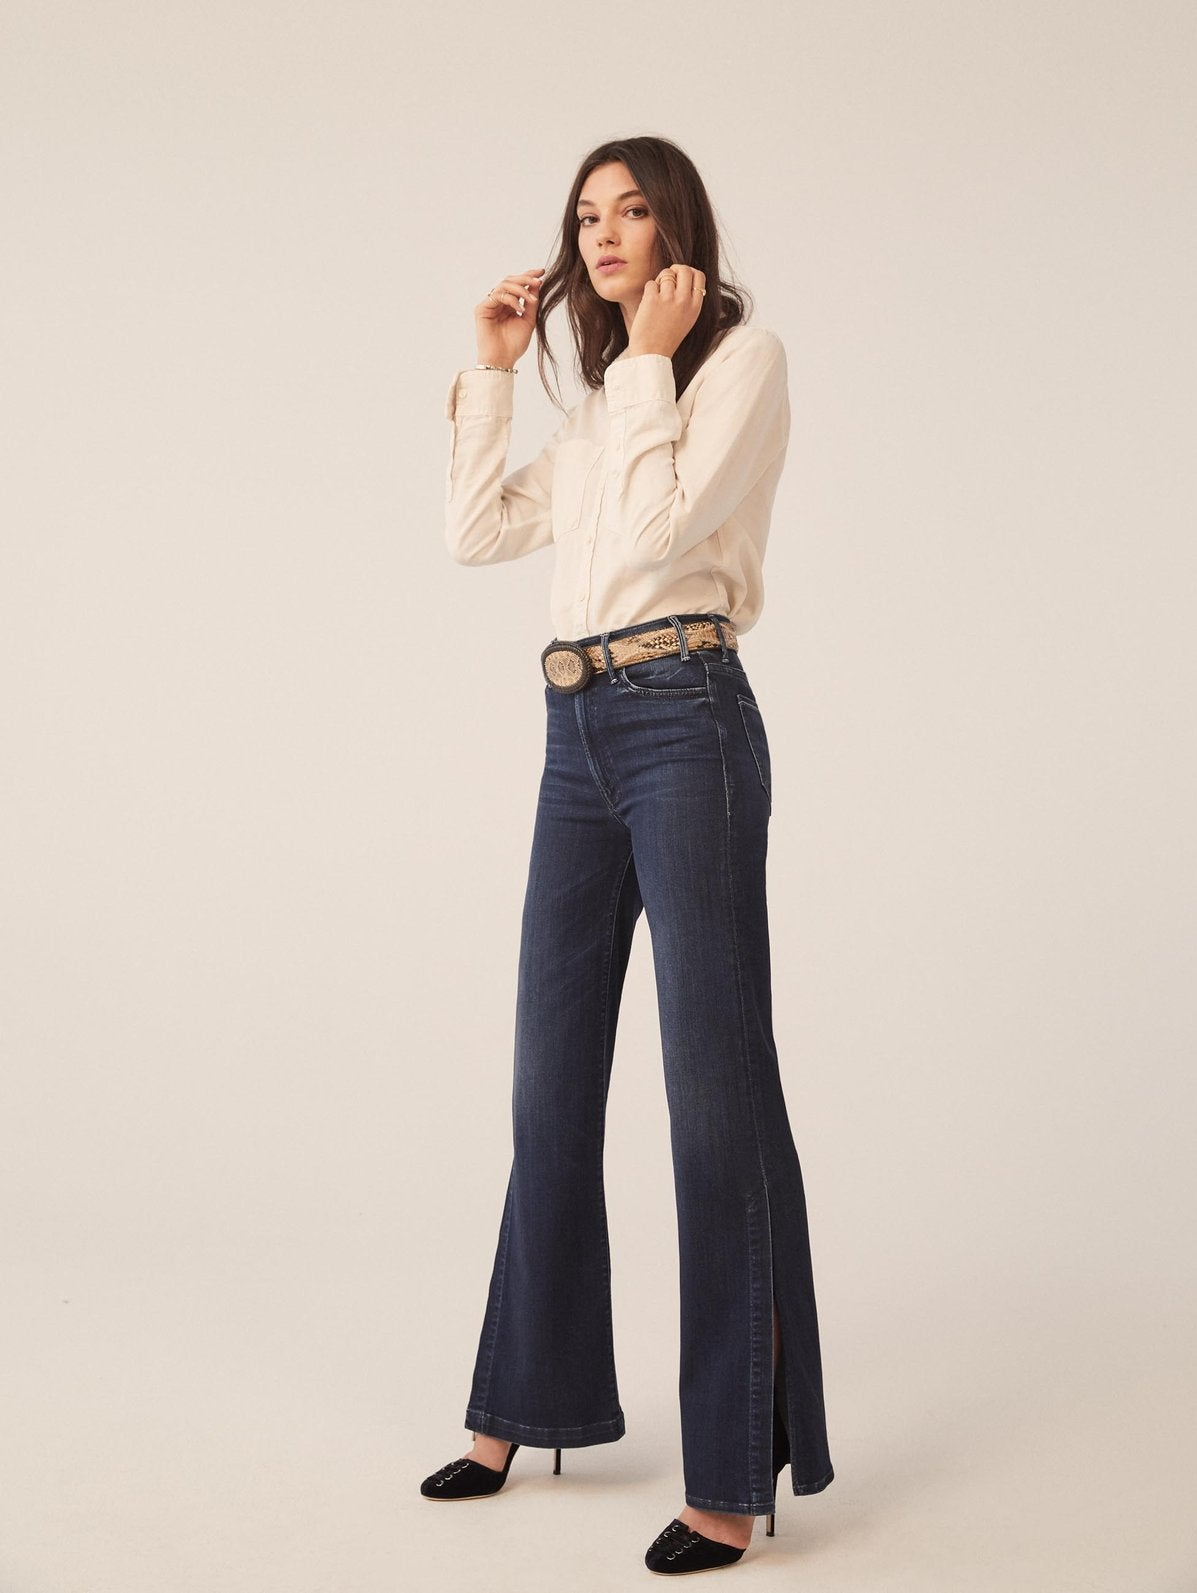 60ae4fe07546 Denim & Jean Trends That Are Going To Be Huge In 2019